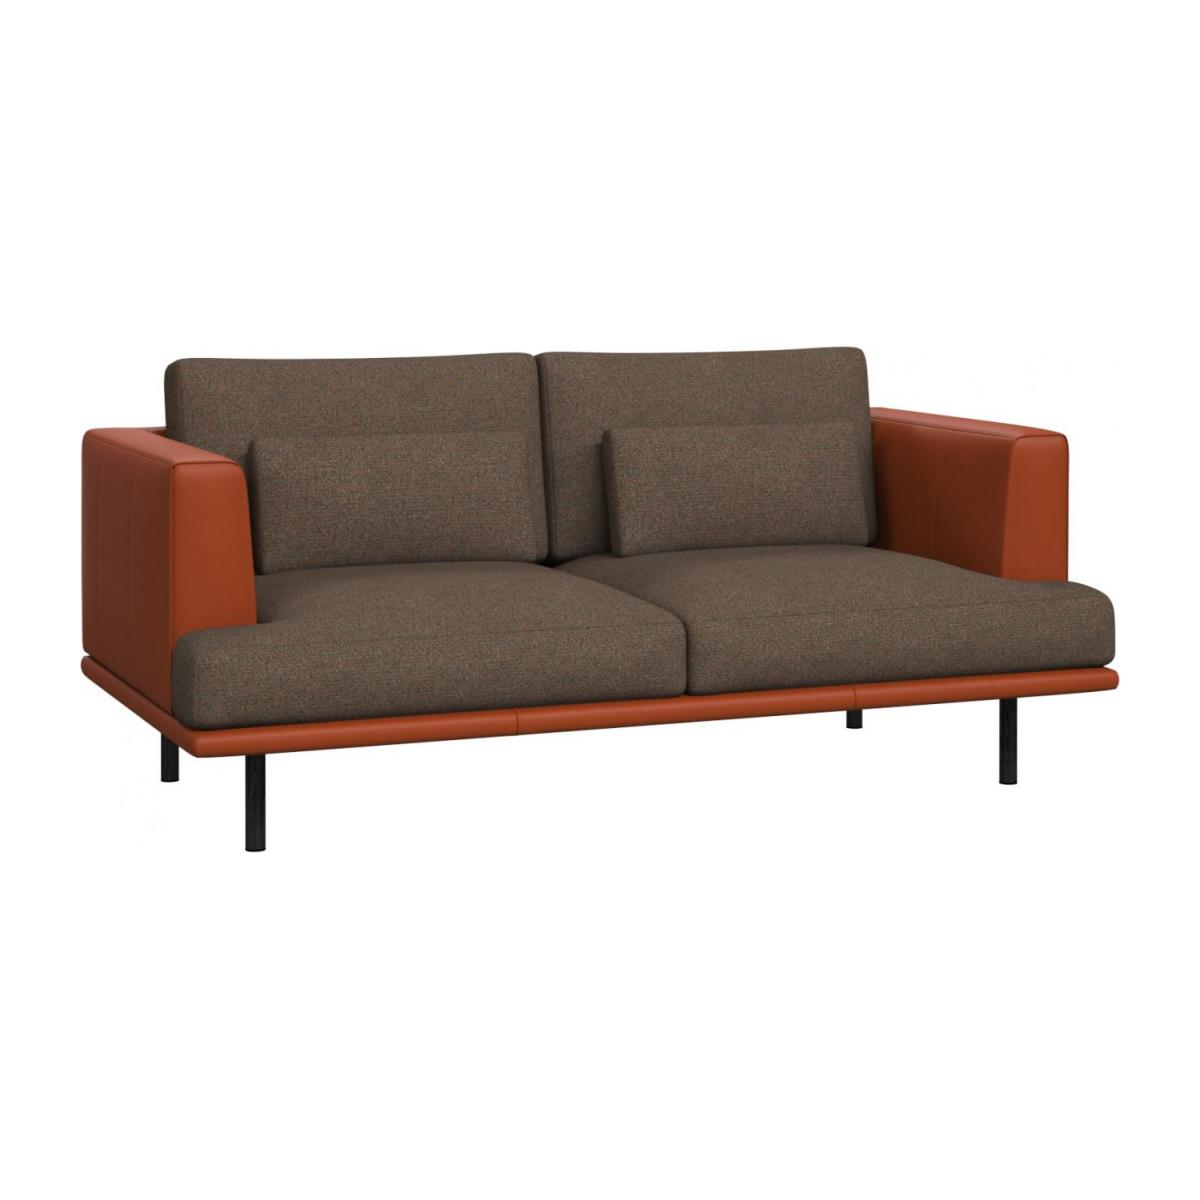 2 seater sofa in Lecce fabric, burned orange with base and armrests in brown leather n°1